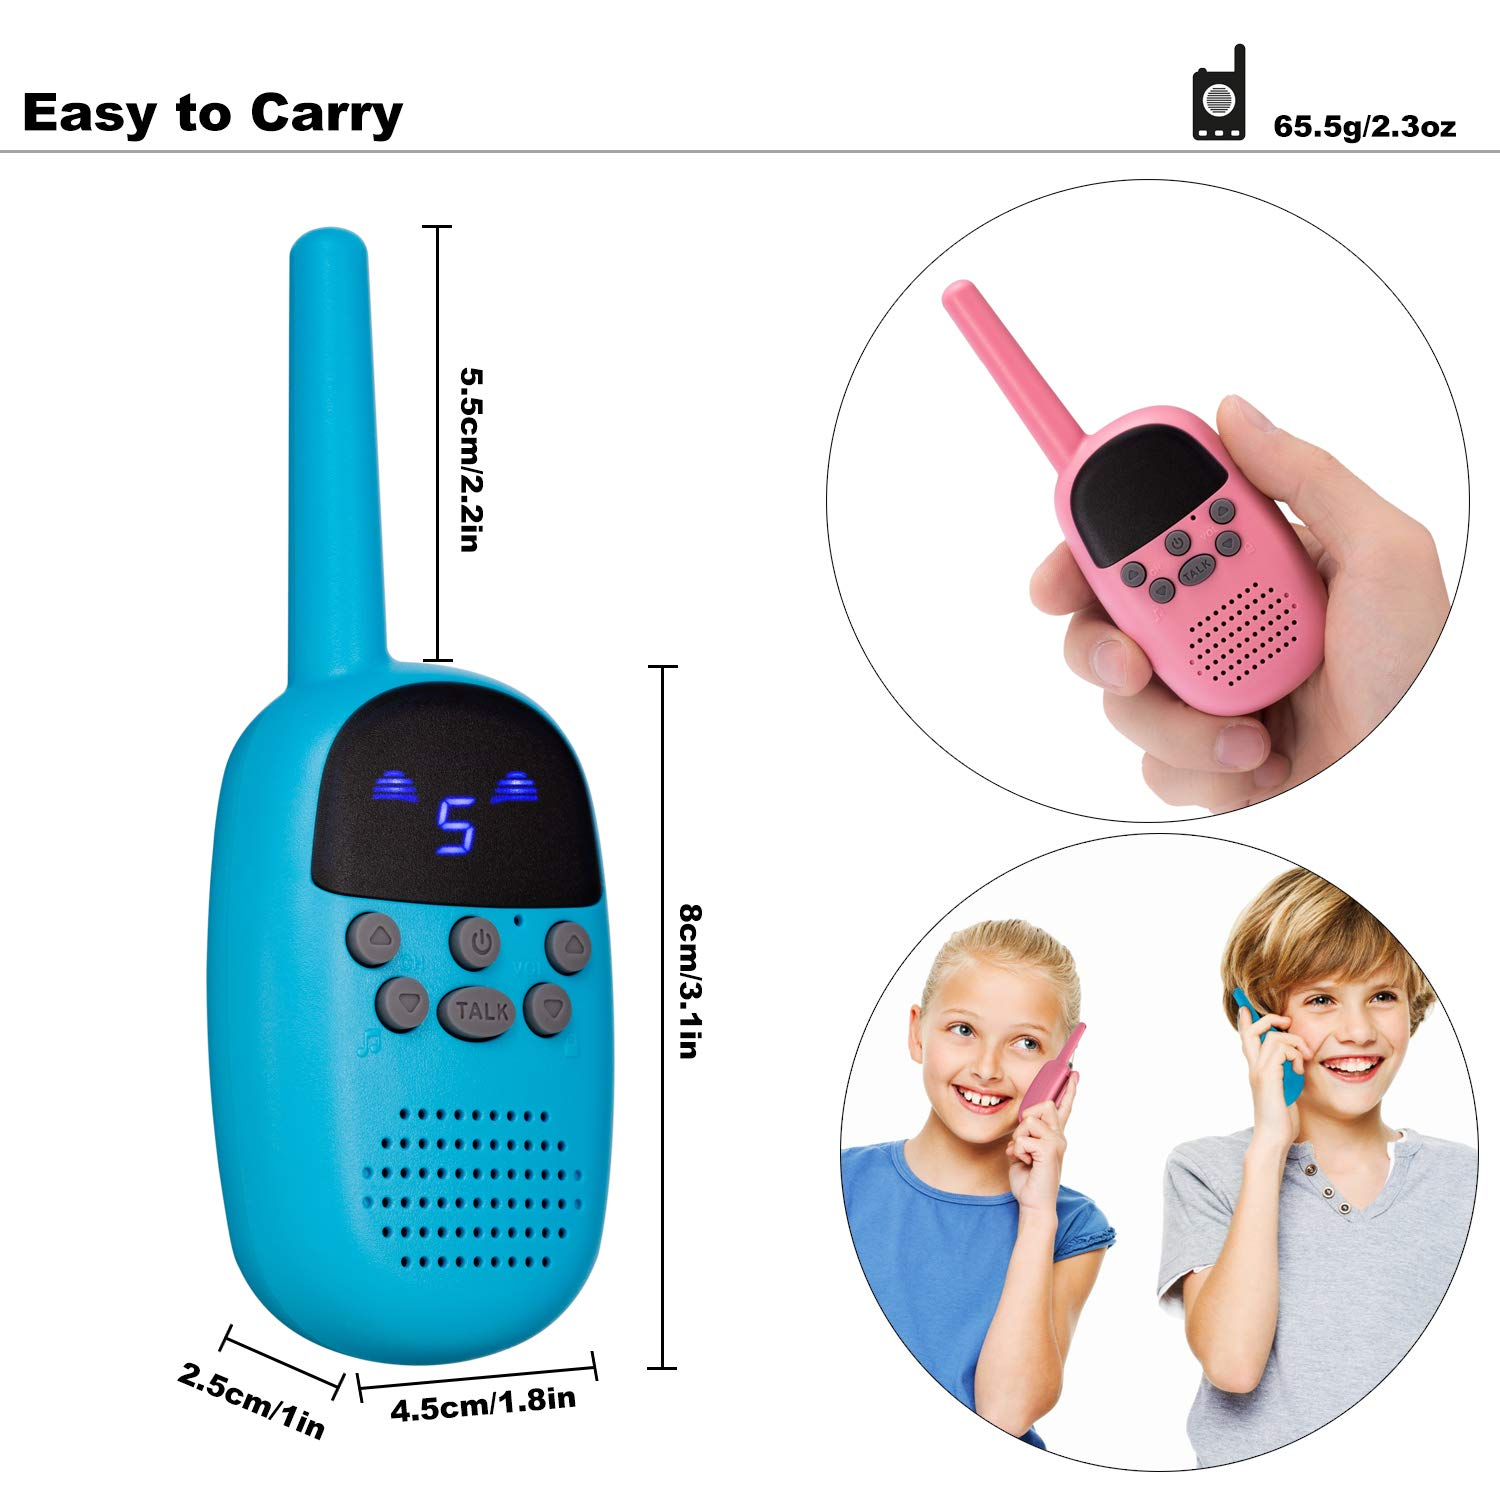 omzer Toy Walkie Talkies for Kids with 9 Channels FRS/GMRS Handheld Interphone Long Range for Adventures, Camping, Hiking, Great Creative Gifts for 4-7 Years Old Girls Boys(Pink/Blue, 1 Pair) by omzer (Image #3)